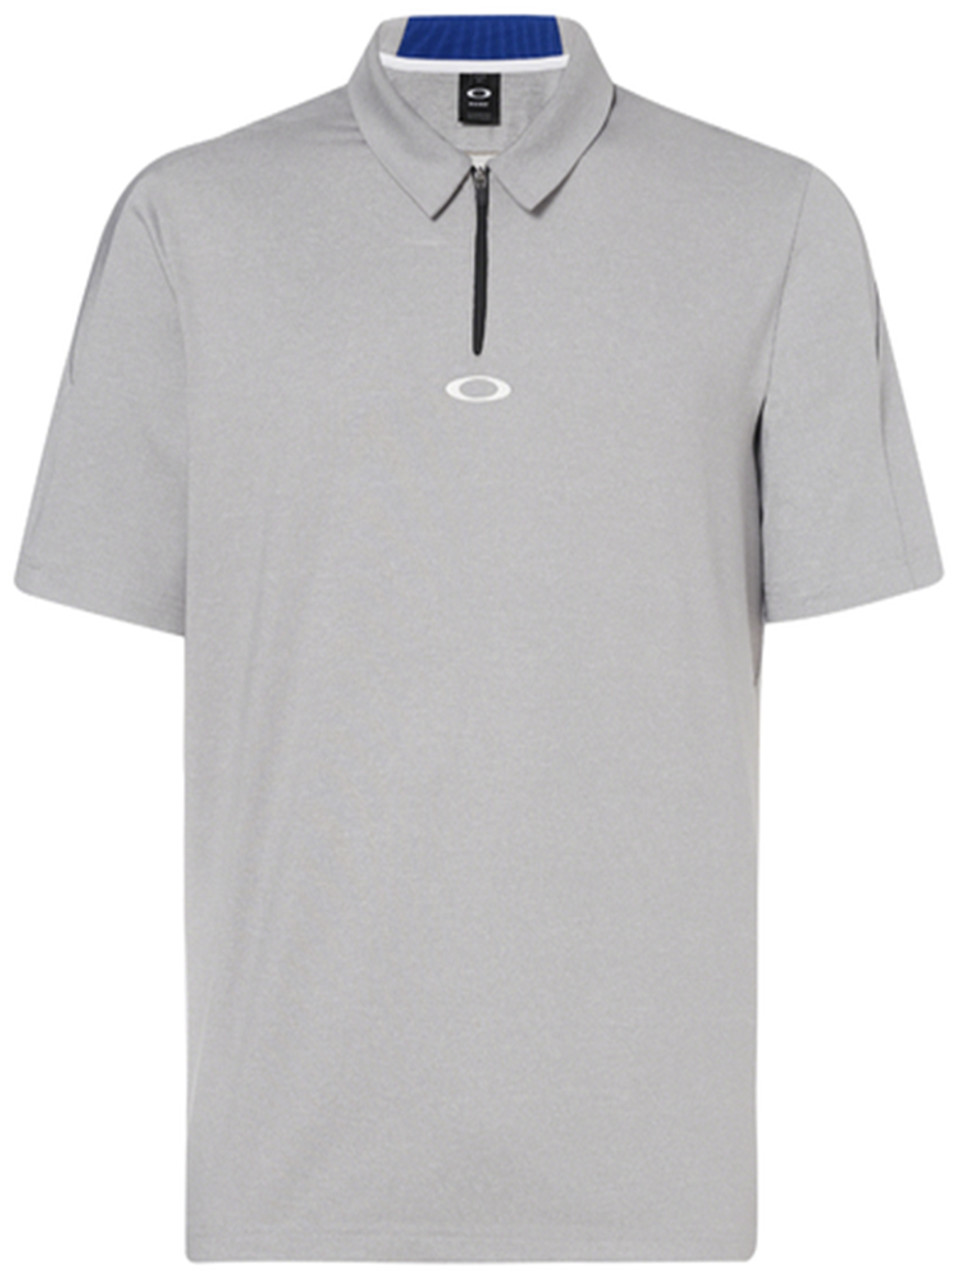 13941eef9c6de Oakley Performance Ellipse Golf Polo - Granite Heather - Mens For Sale